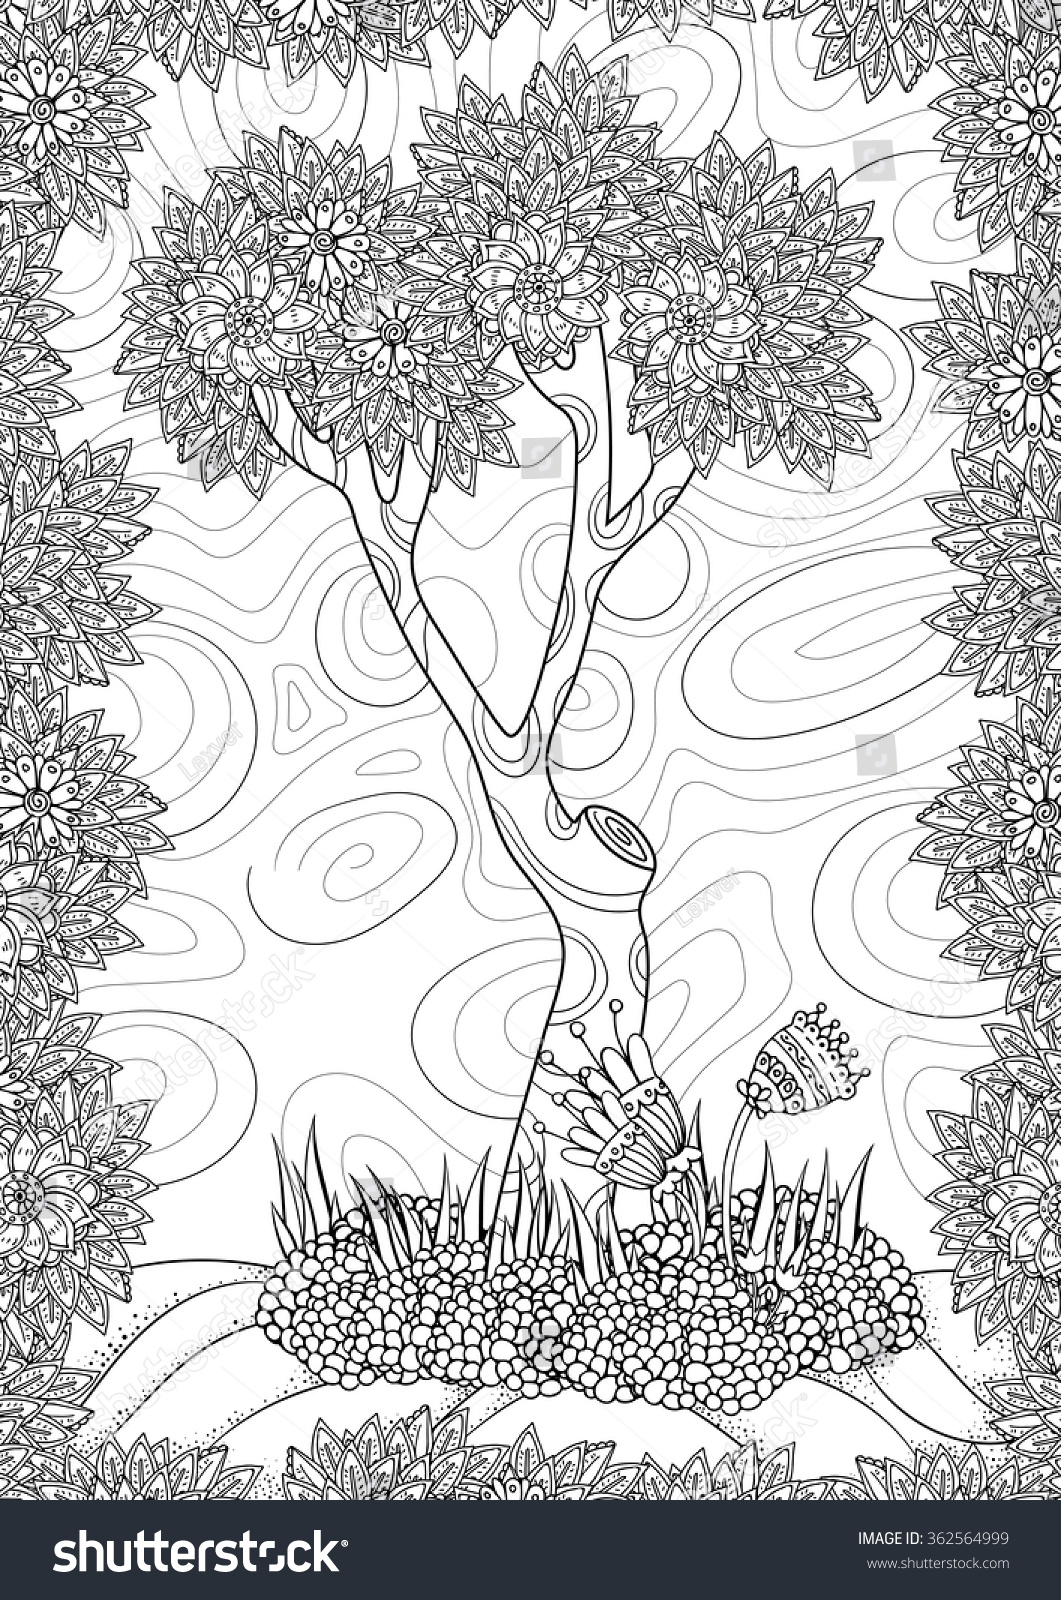 Coloring pages for adults landscapes - Landscape With Tree And Flowers Coloring Book Page For Adult A4